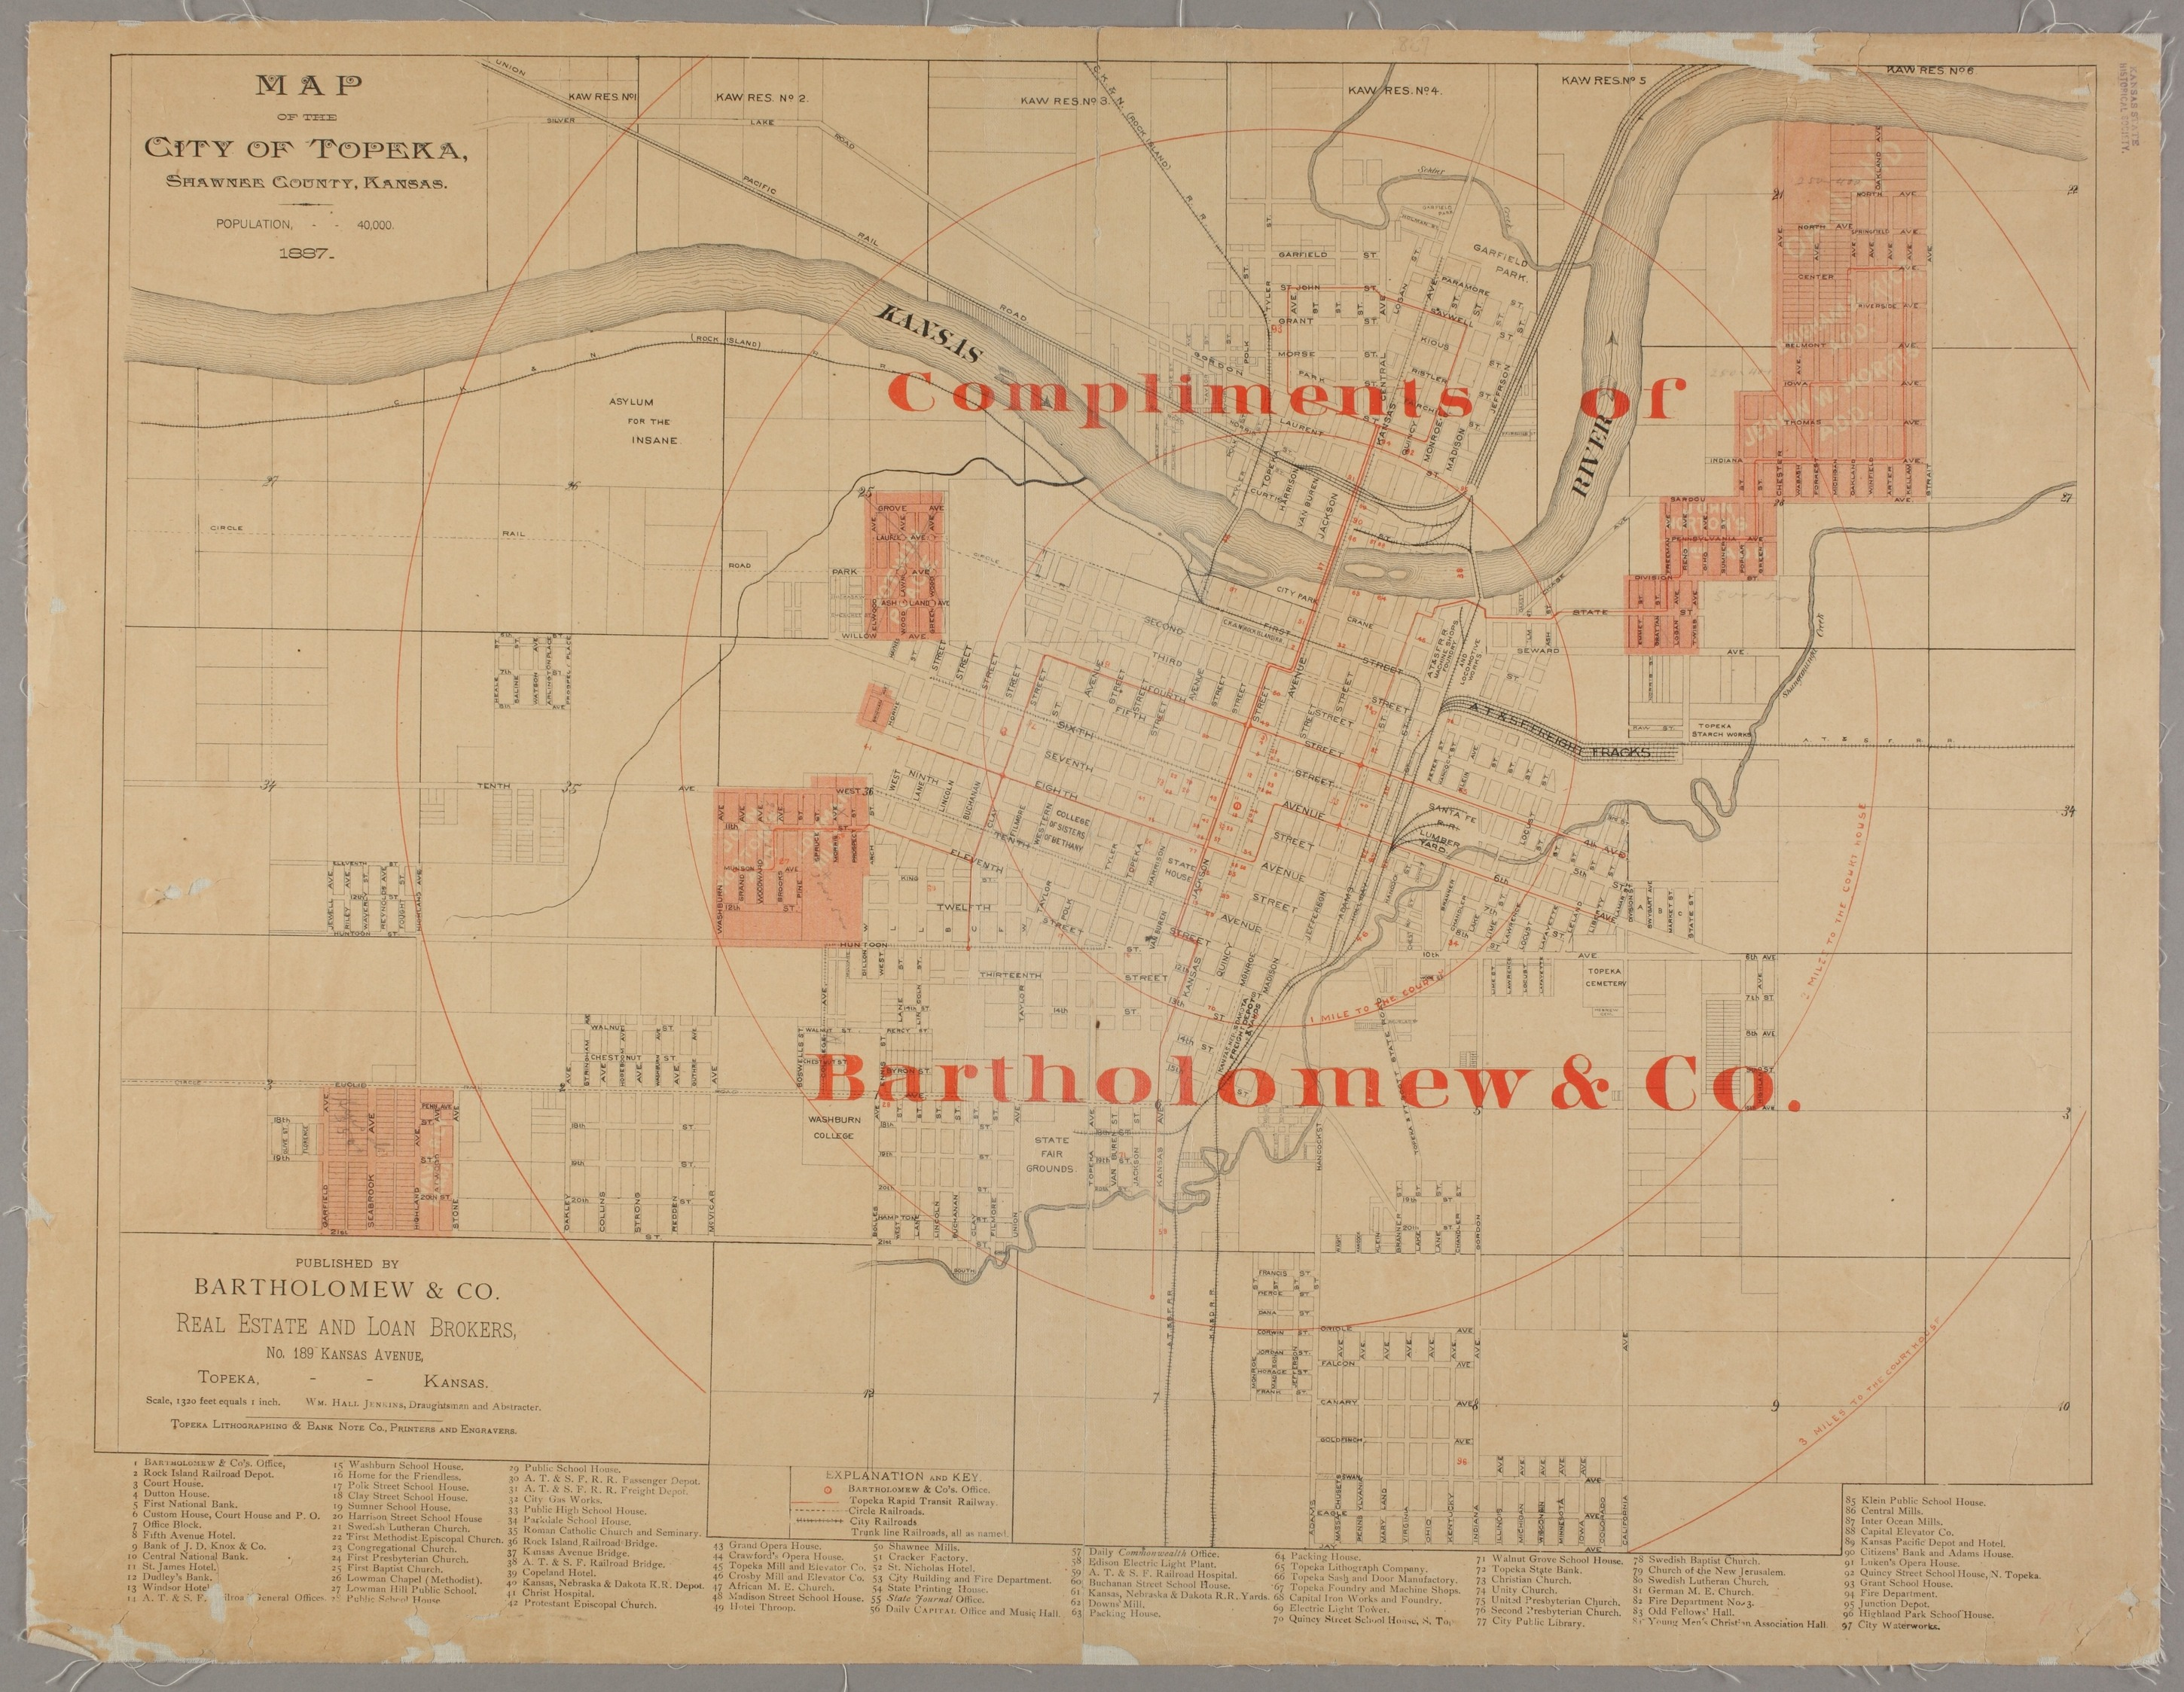 Map of the city of Topeka, Shawnee County, Kansas